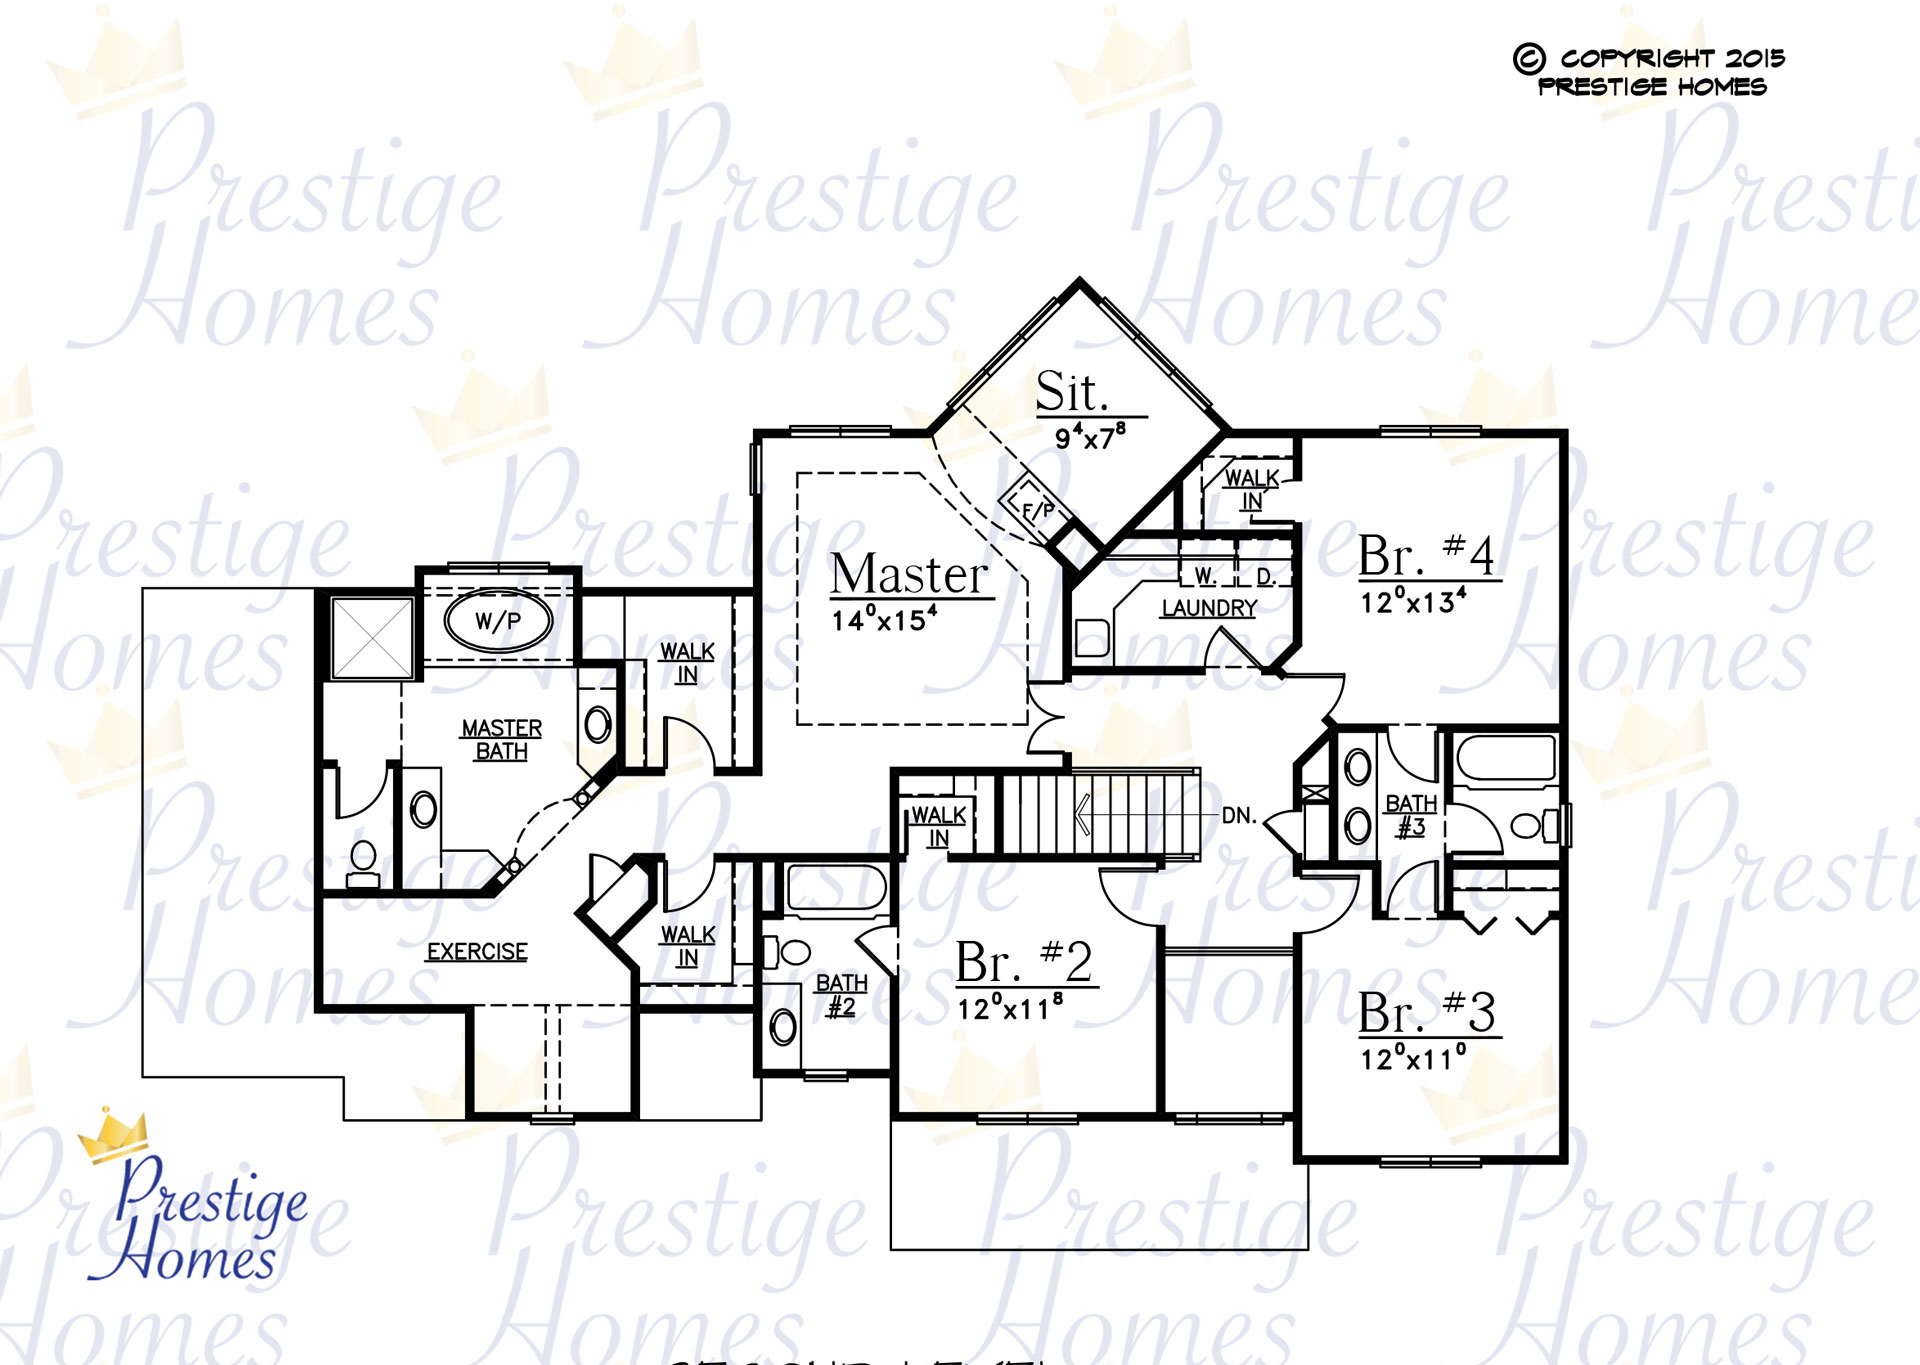 Prestige Homes - Floor Plan - Mitchel - Original - Upper